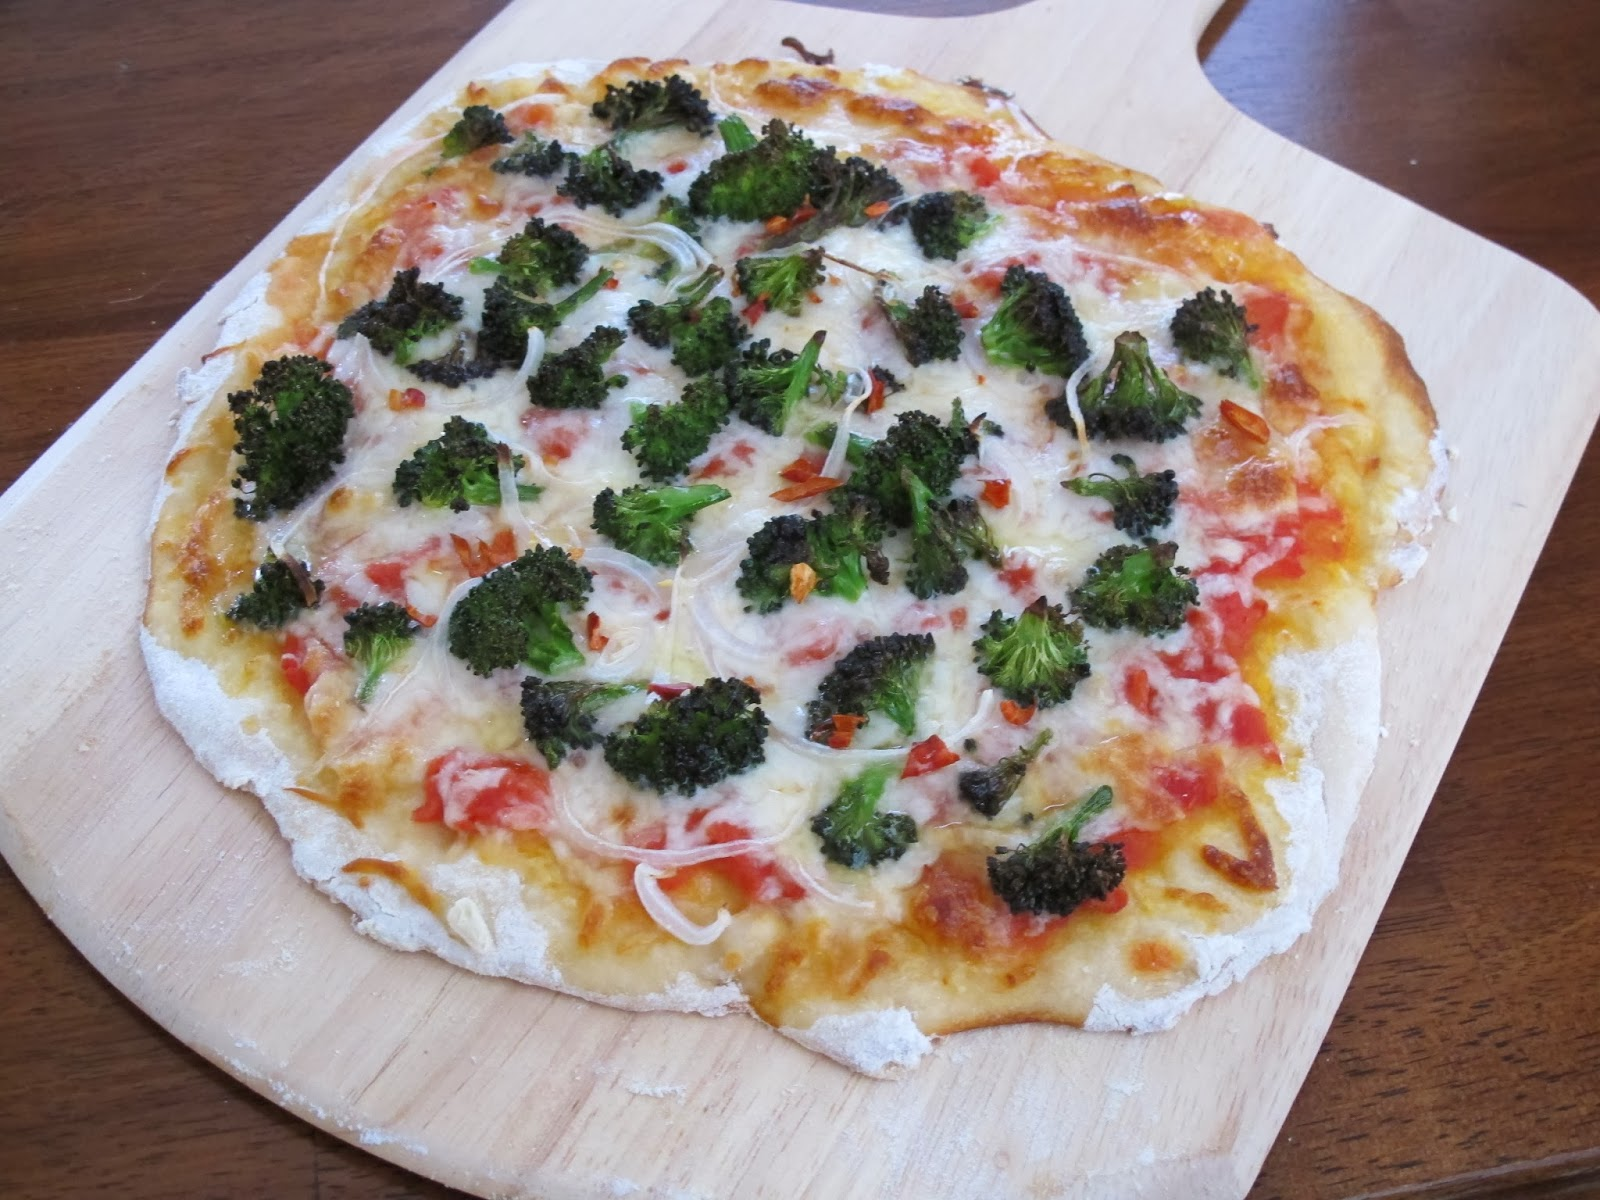 Spicy Broccoli Onion Pizza